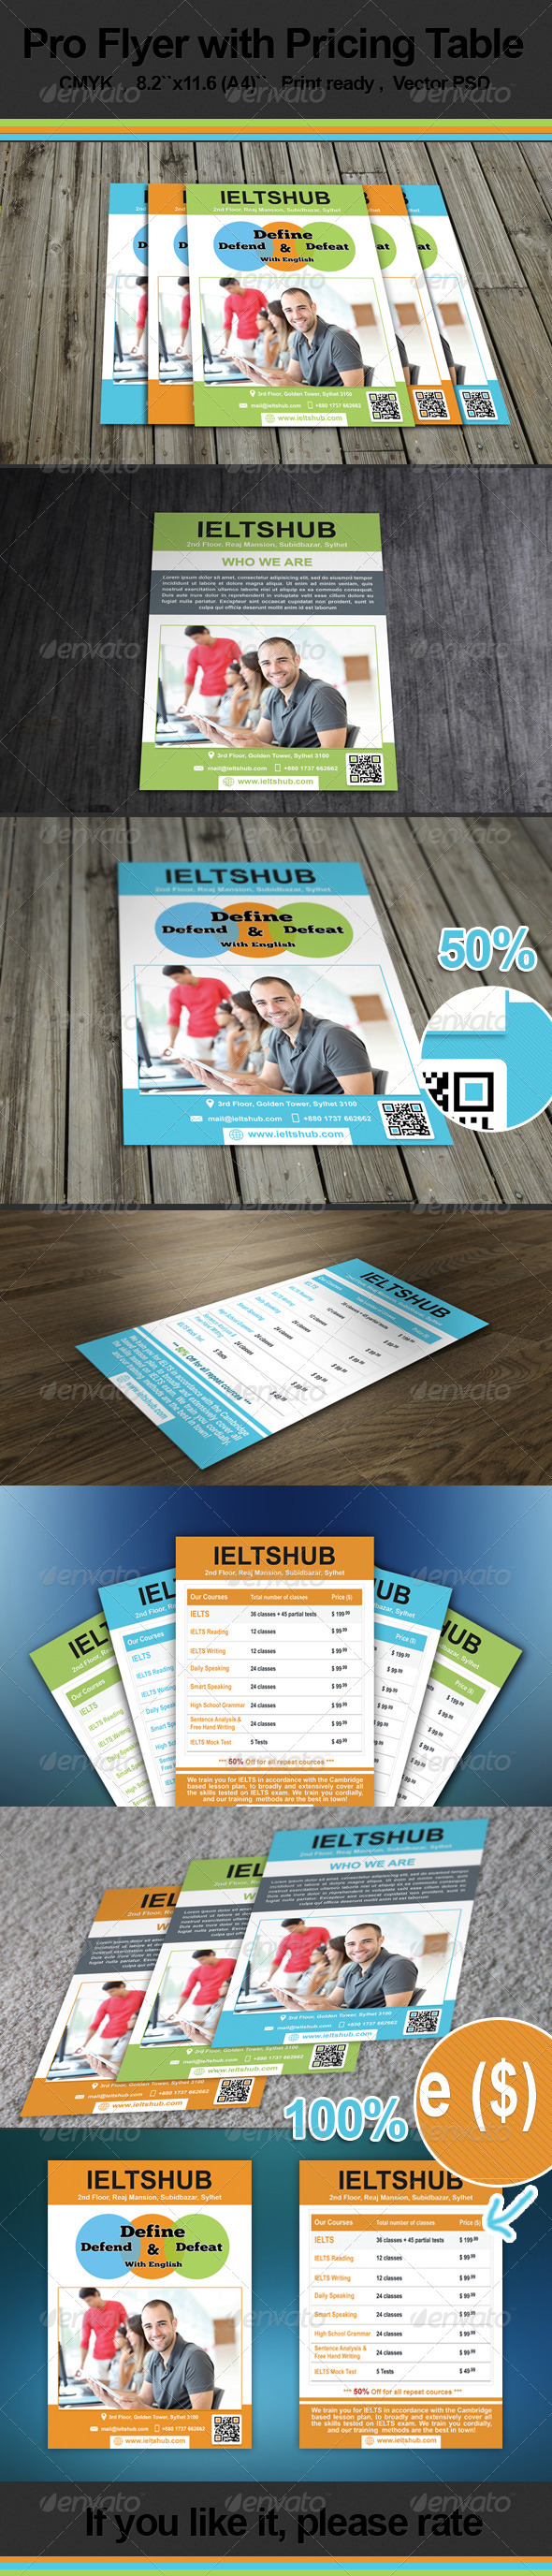 GraphicRiver Pro Flyer with Pricing table 4603611